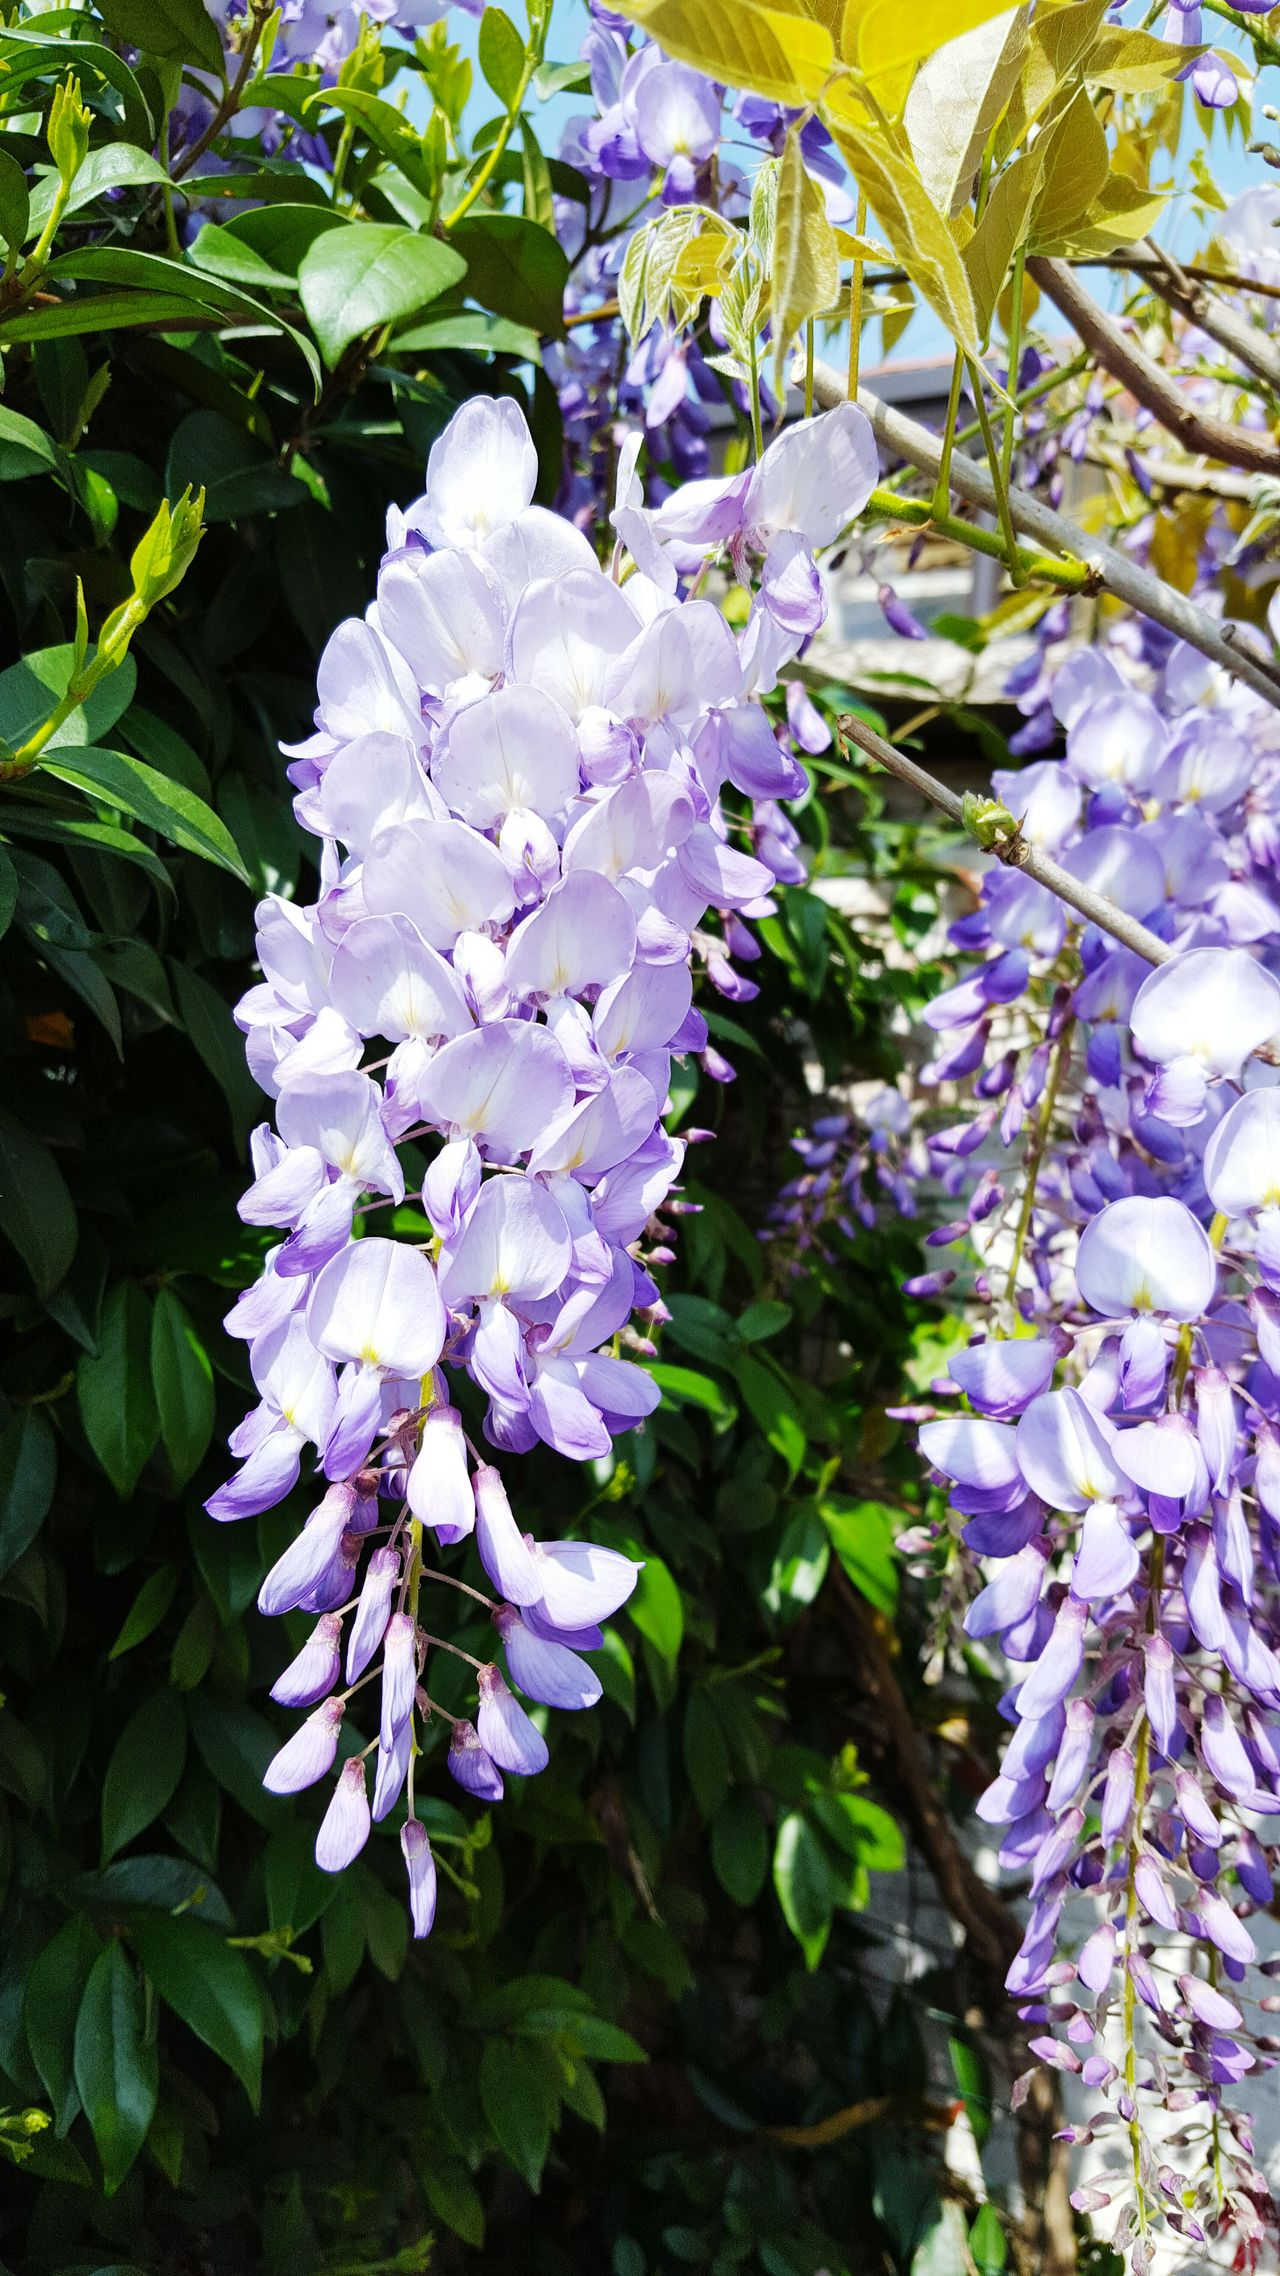 Glicine Flower Freshness Fragility Purple Growth Petal Beauty In Nature Close-up Plant Nature Flower Head In Bloom Springtime Vibrant Color Blossom Day Botany Bunch Of Flowers Outdoors Lilac